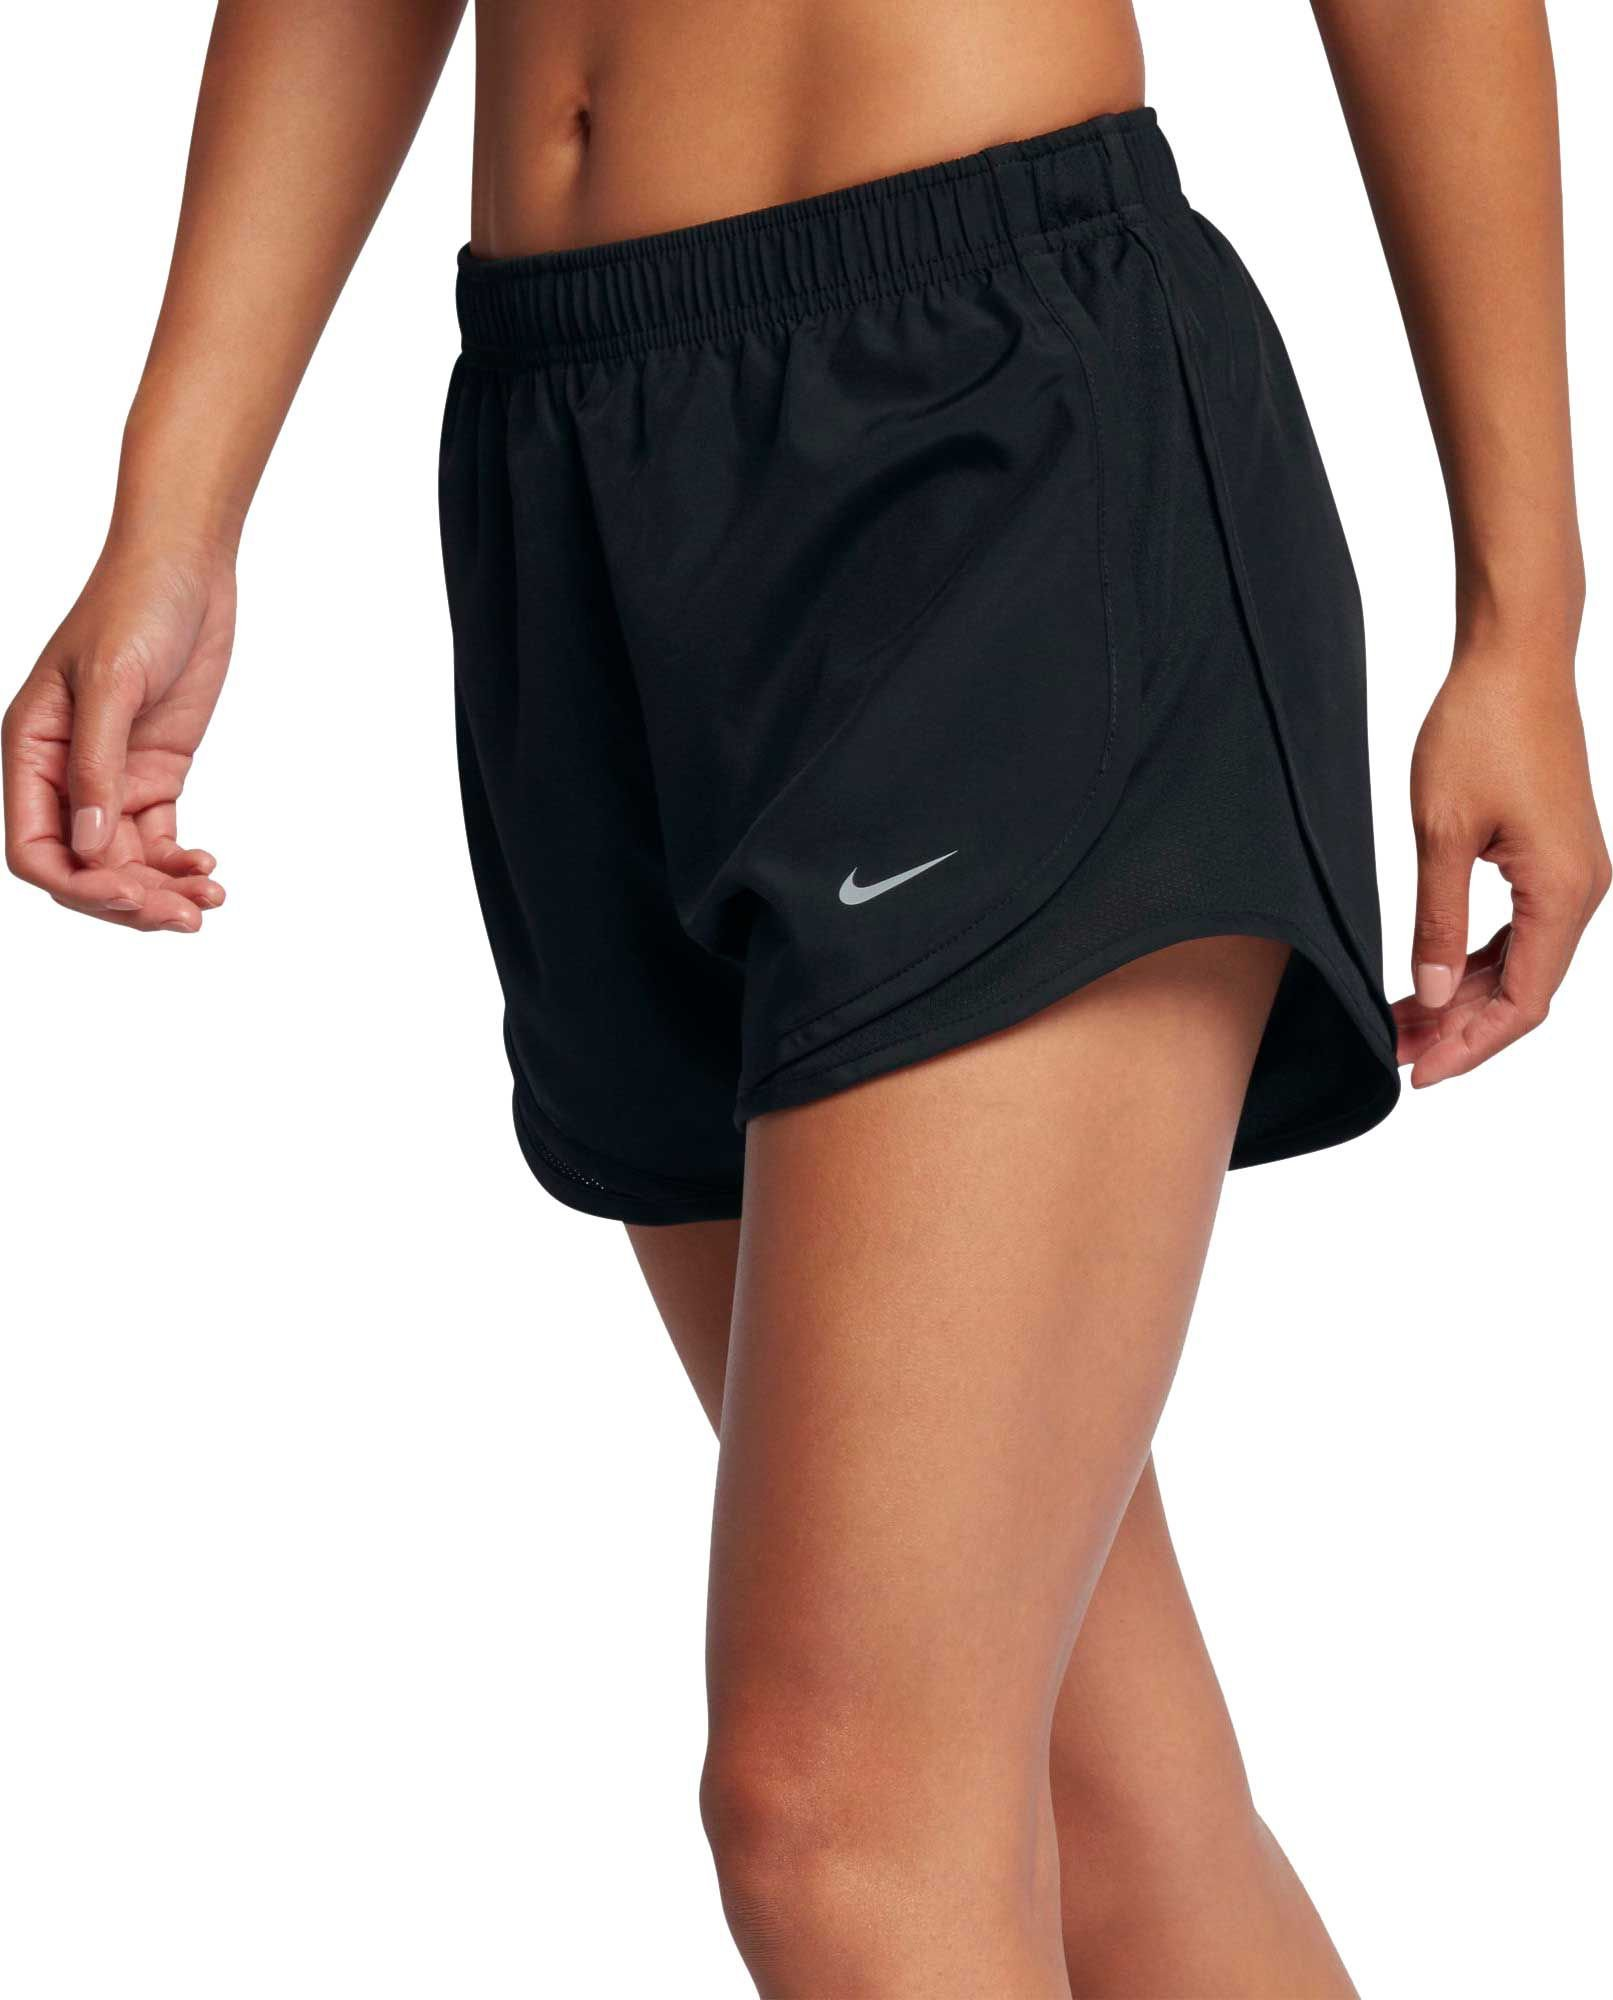 Nike Women's 3'' Dry Tempo Core Running Shorts(Black/Black/Blk/Wolf Grey,XX-Large) by Nike